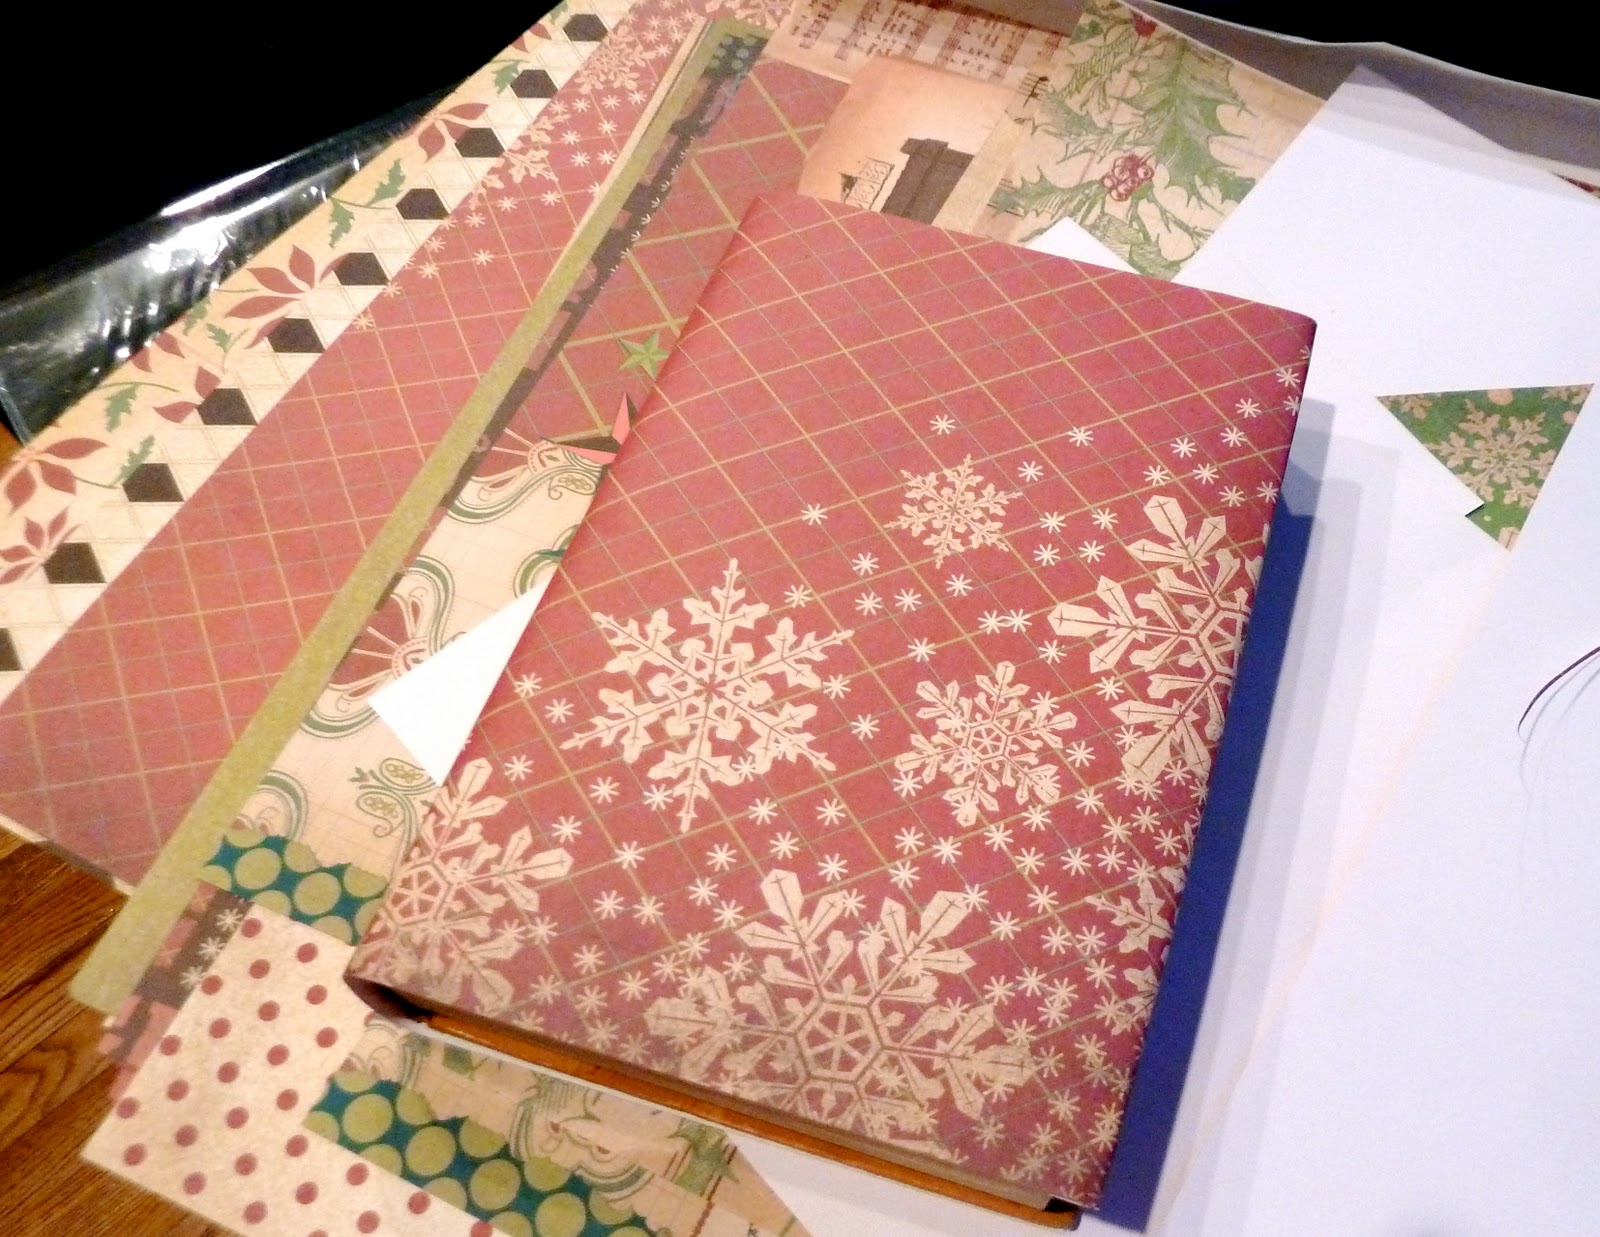 Scrapbook paper books - This Was Such A Quick 5 Minute Project And Adds A Simple Festive Look To Our Coffee Table